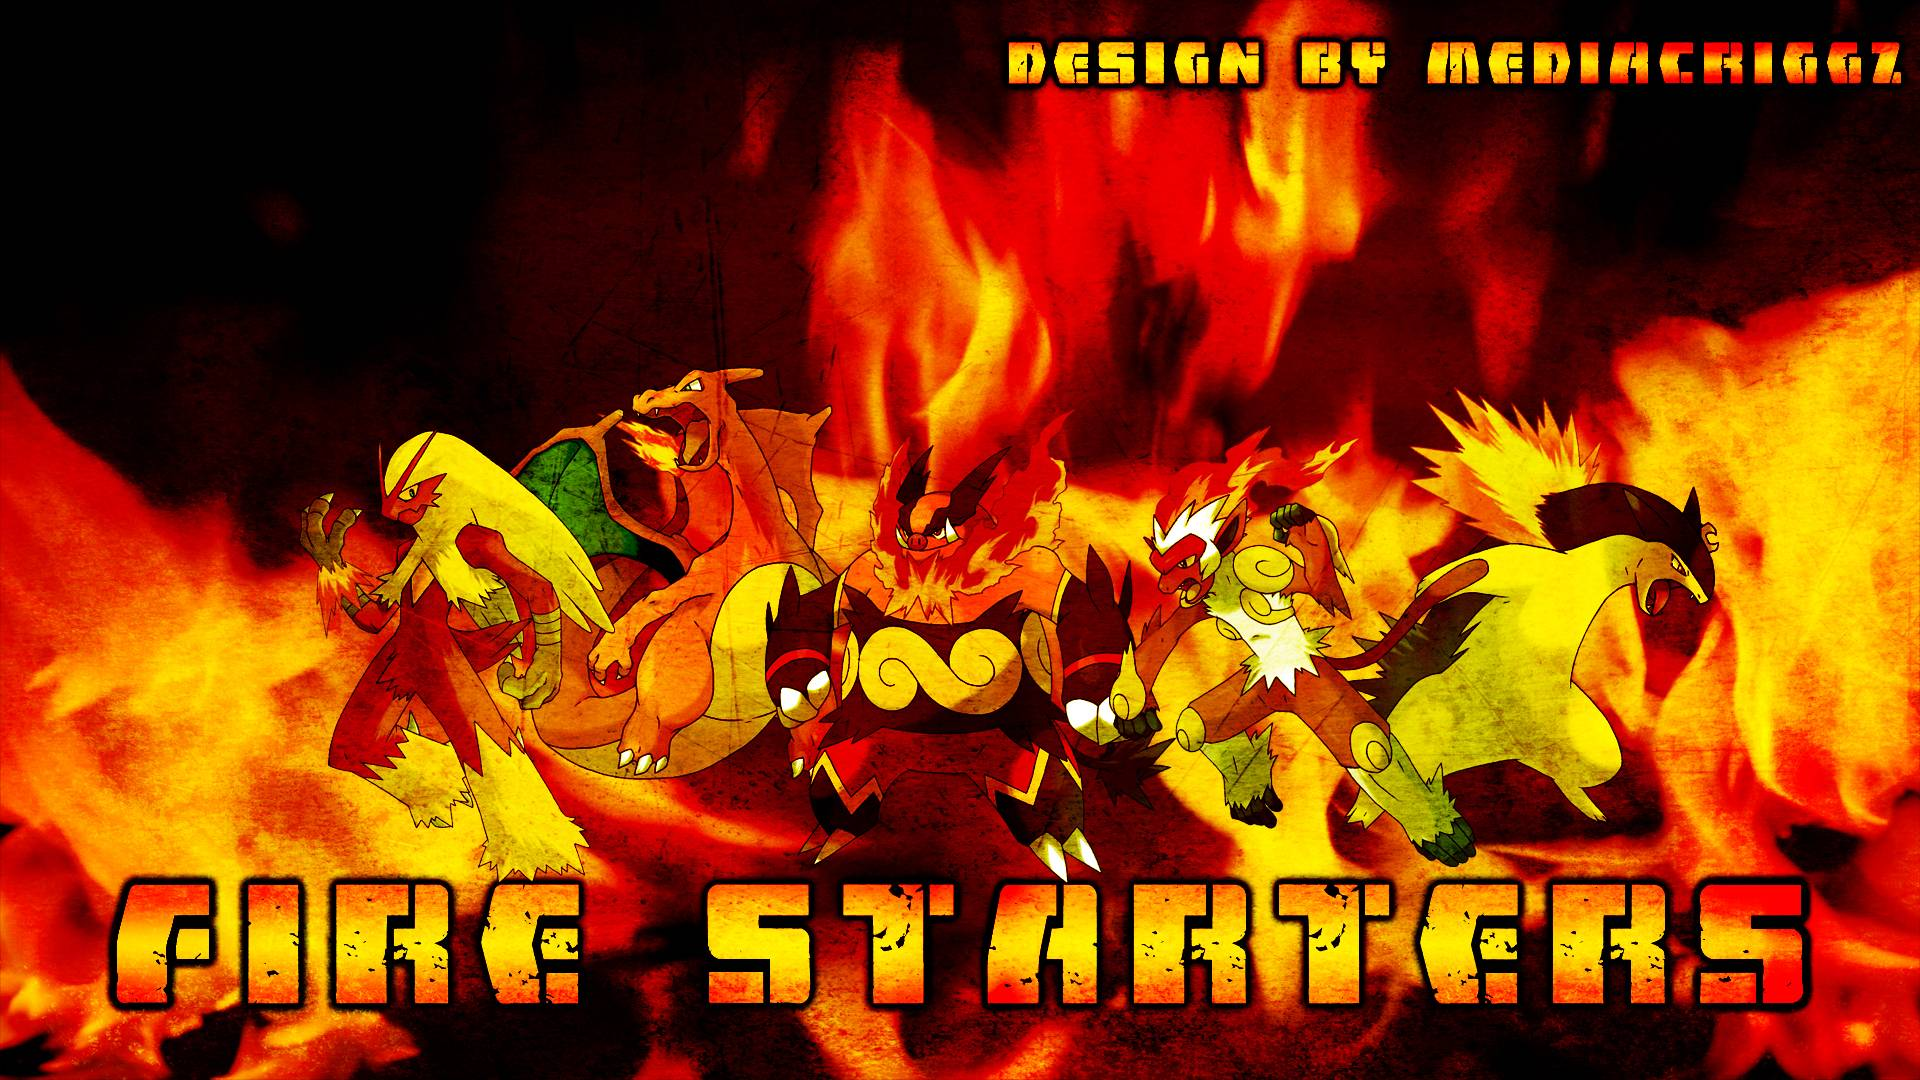 Pokemon Fire Starters Wallpaper By MediaCriggz On DeviantArt